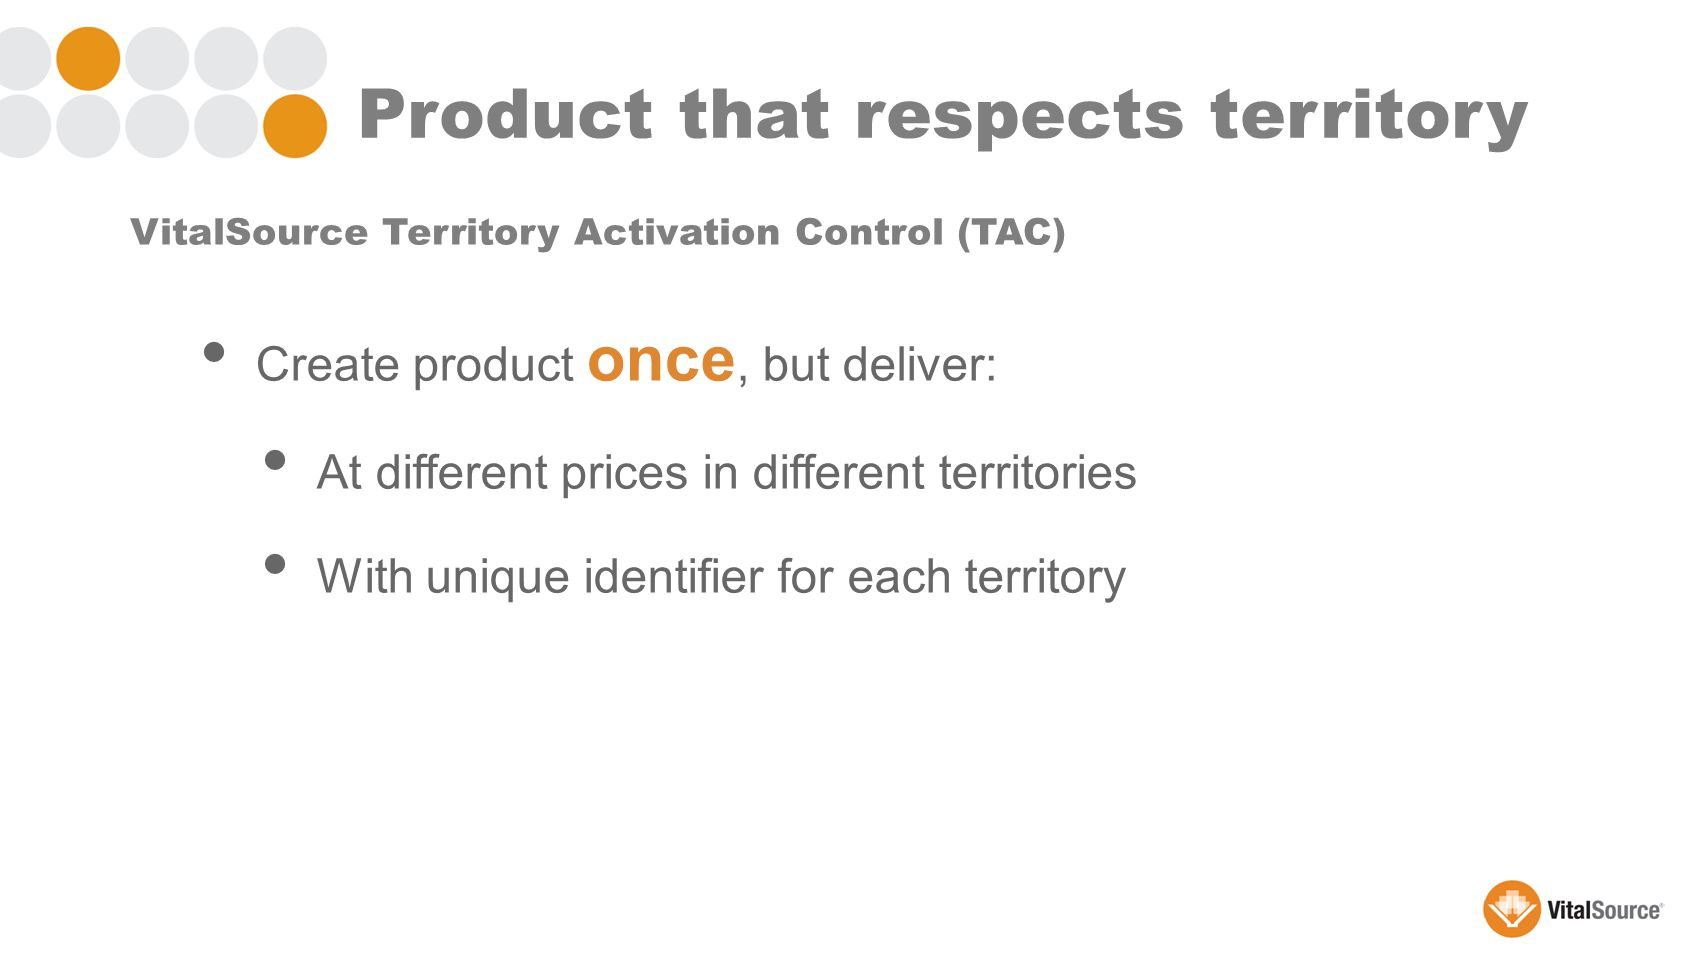 Create product once, but deliver: At different prices in different territories With unique identifier for each territory VitalSource Territory Activation Control (TAC) Product that respects territory